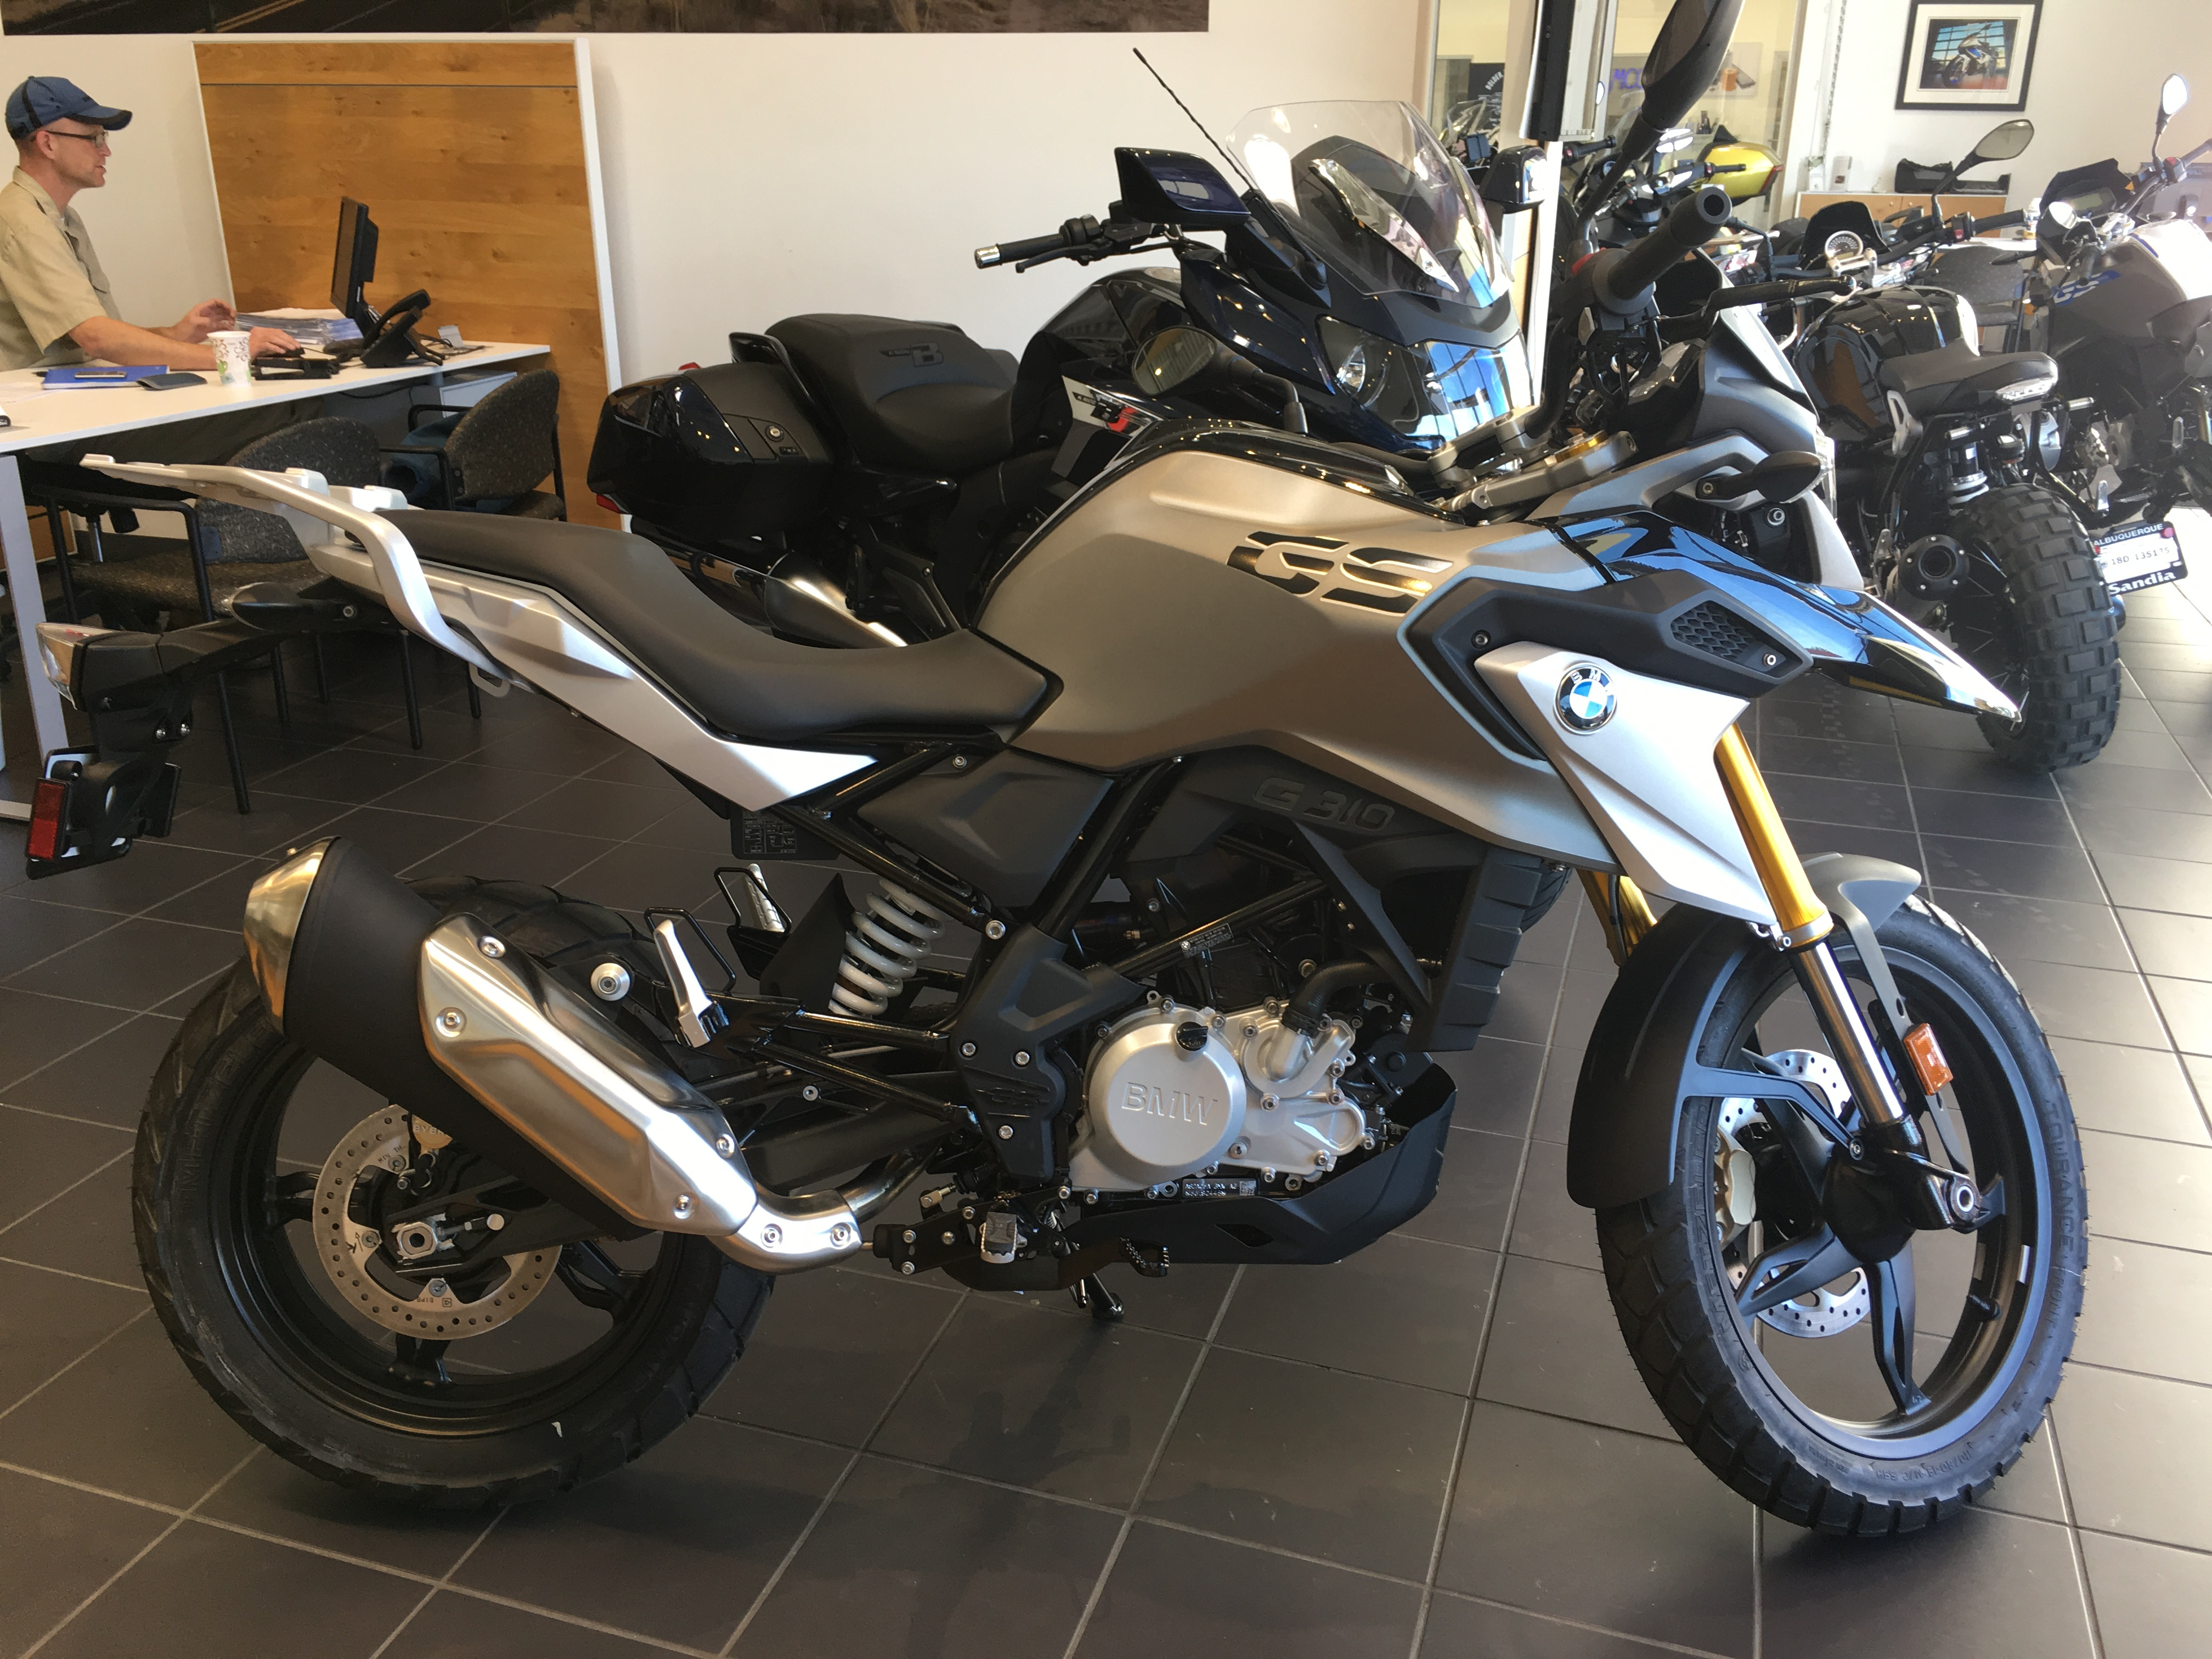 New Motorcycle Inventory - G310GS - Sandia BMW Motorcycles ...